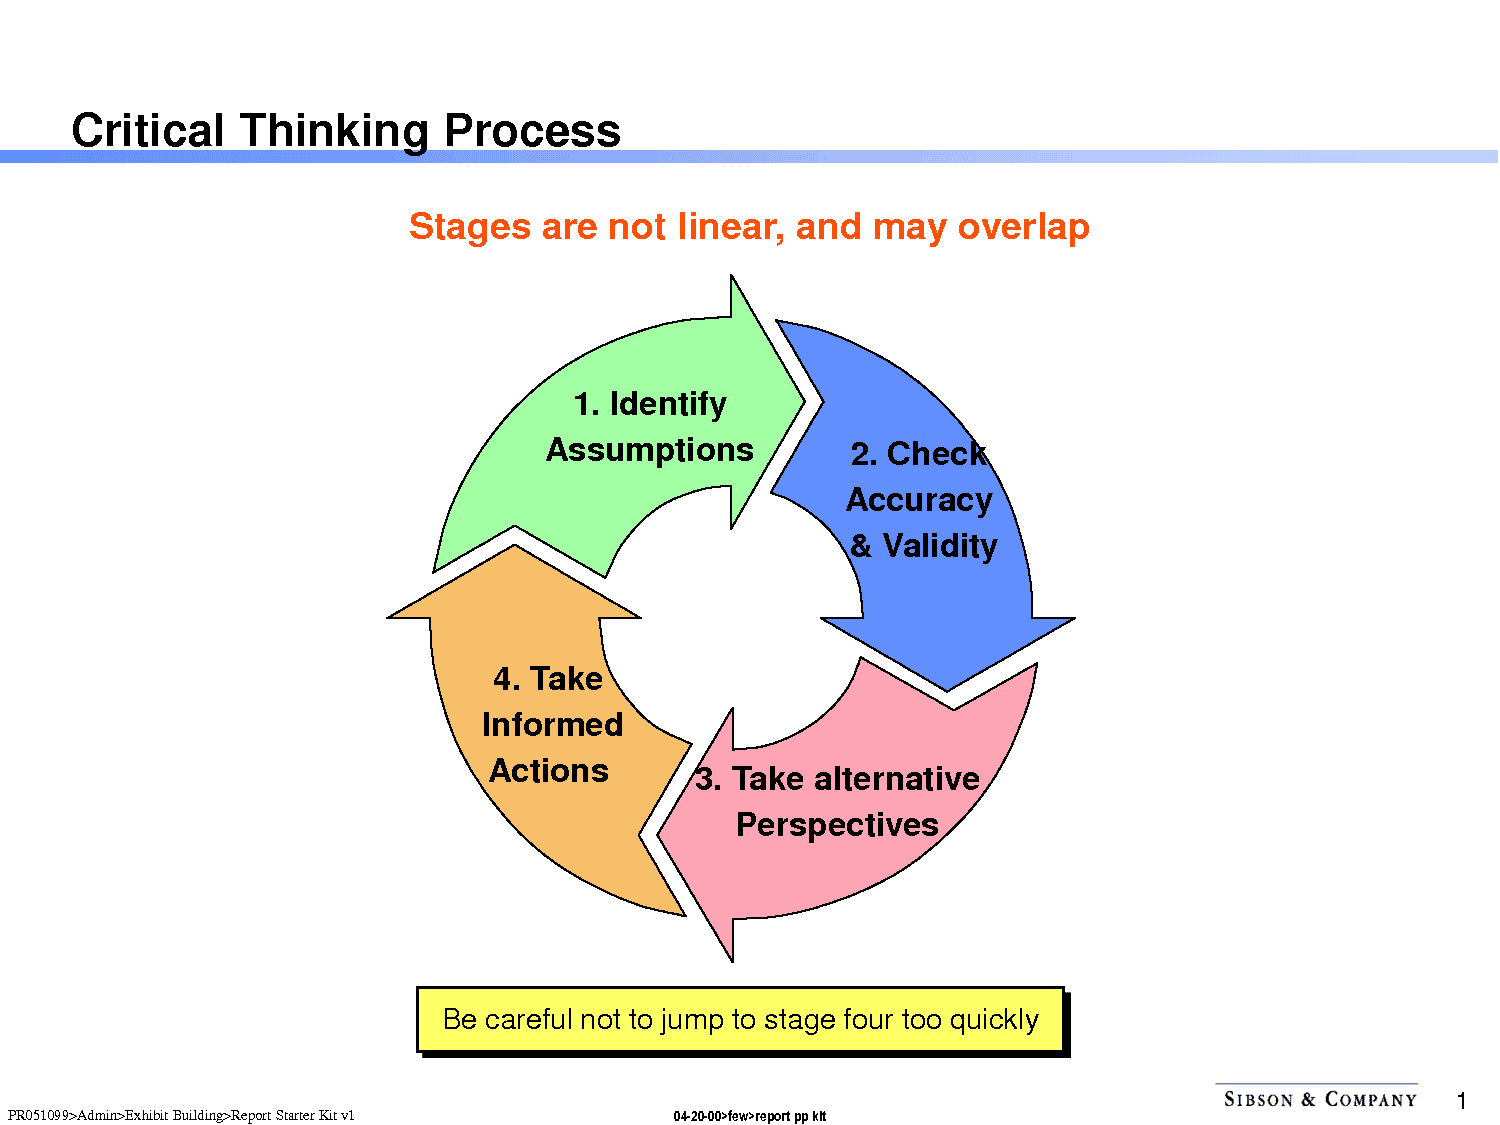 concept of critical thinking originate The process we use to reflect on assess and judge the assumption underlying our  own and others ideas and efforts critical thinking the six types of socratic.